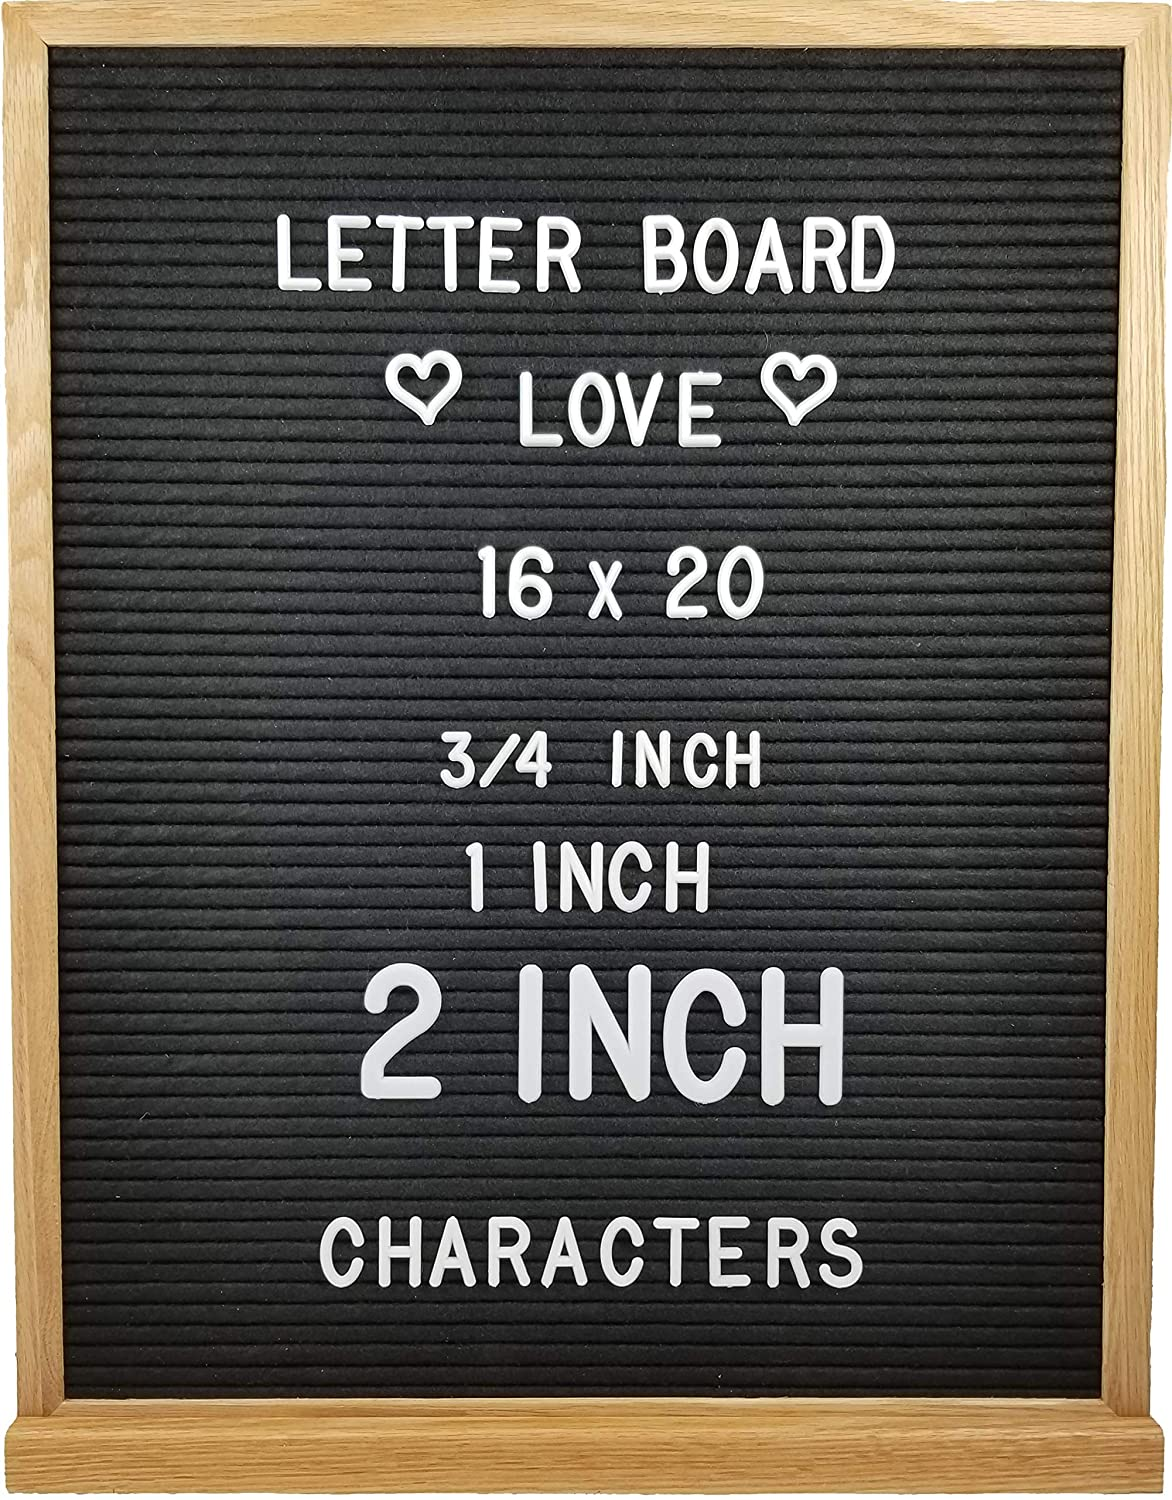 Letter Board Love Letter Board with Solid Oak Wood Frame, 694 Letters + Special Characters & Emojis, and Two Canvas Letter Bags. 12' x 18' Gray Felt